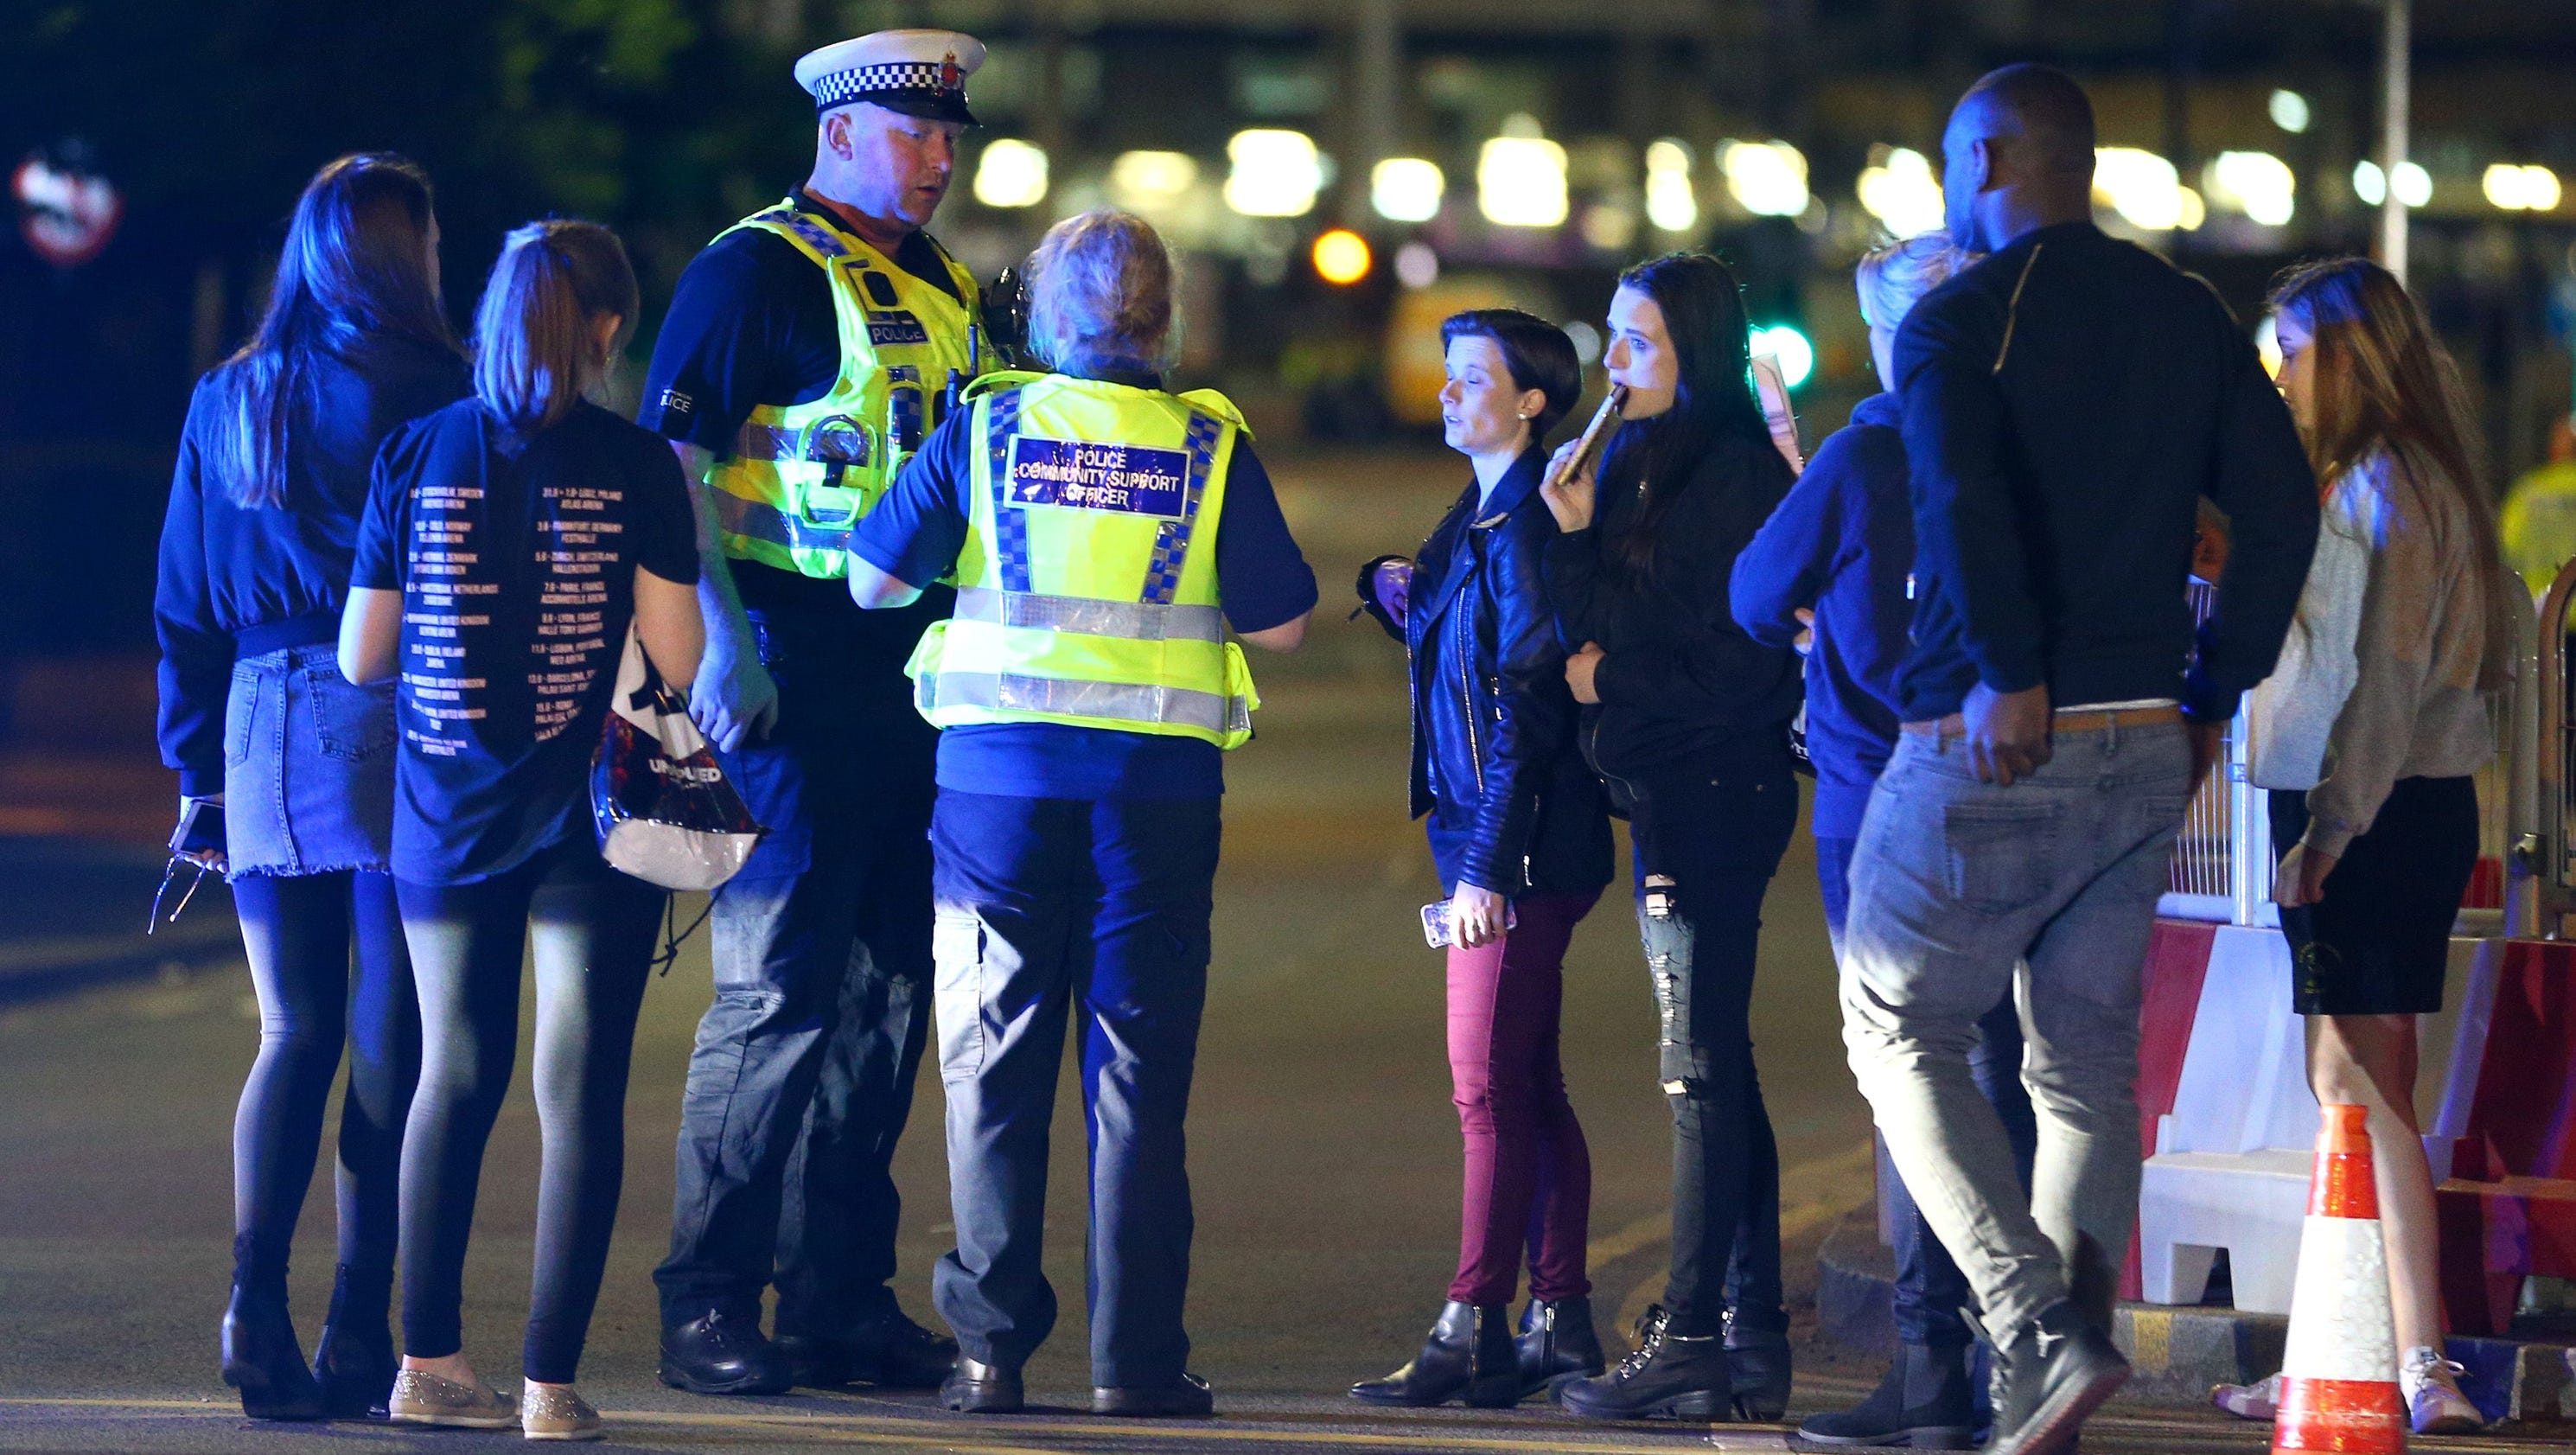 What we know about the Ariana Grande concert explosion